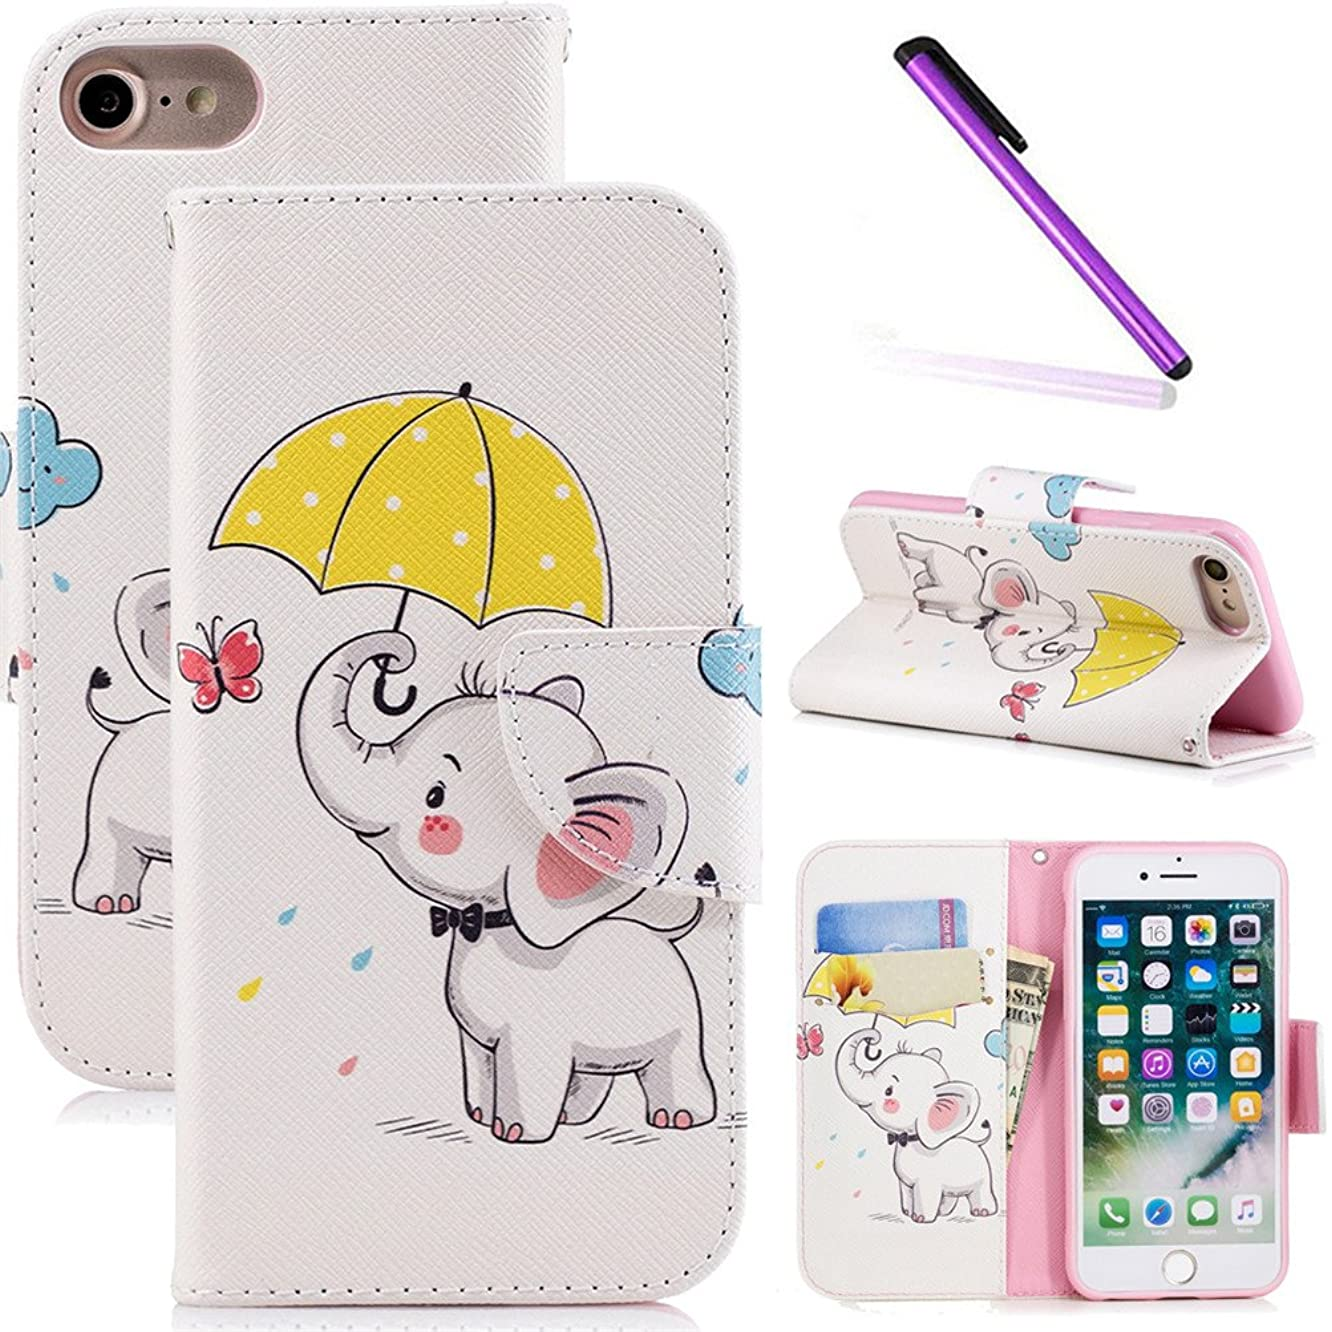 LEECOCO iPhone 8 Plus Case 5.5 inch Fancy Printing Floral Wallet Case Card Cash Holder Slots PU Leather Folio Flip Kickstand Protective Slim Case Cover iPhone 7 Plus Umbrella Dumbo BF